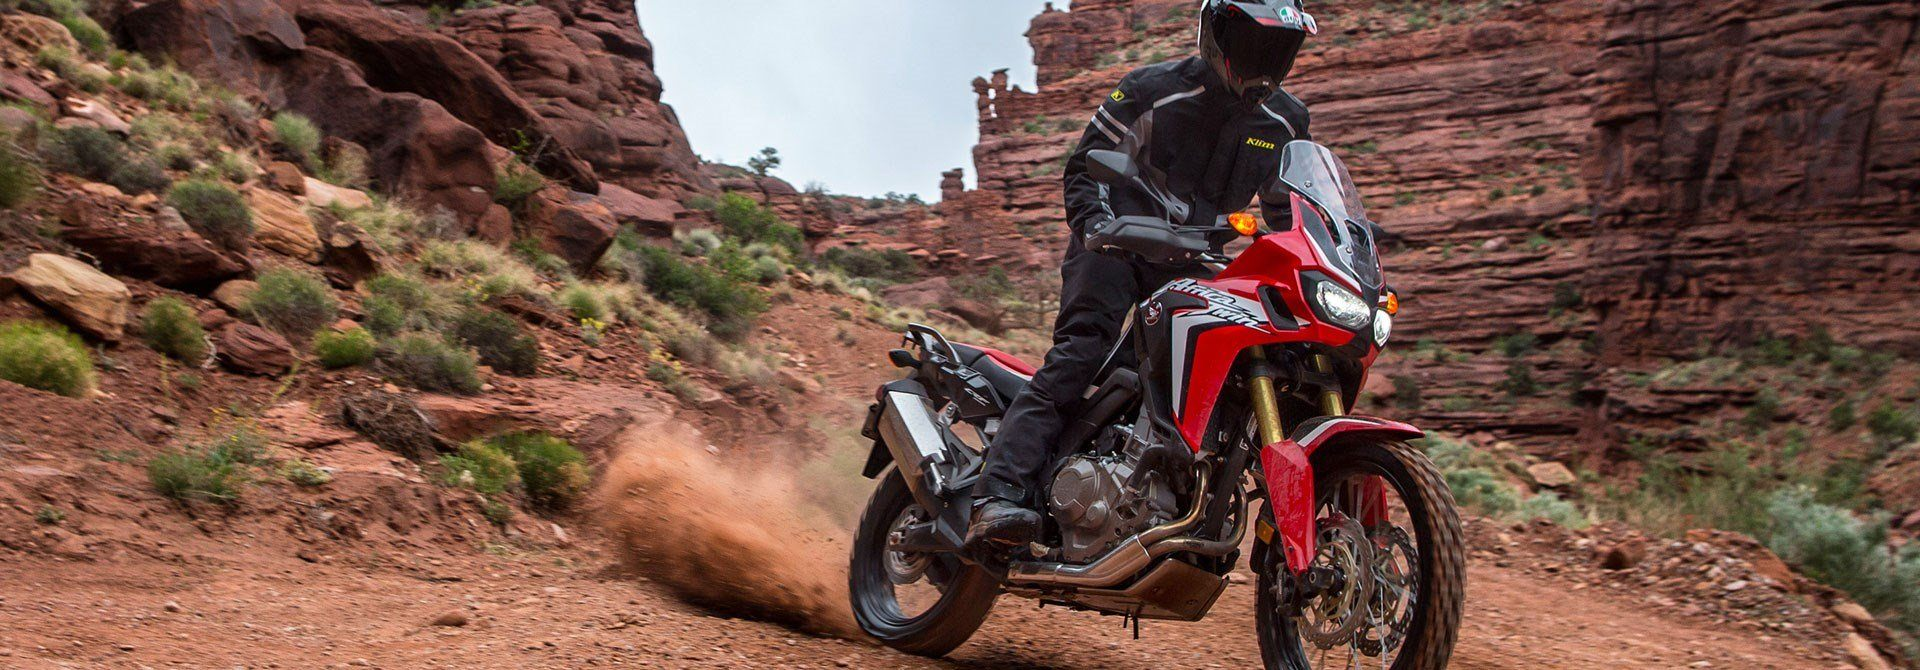 2016_AfricaTwin_02